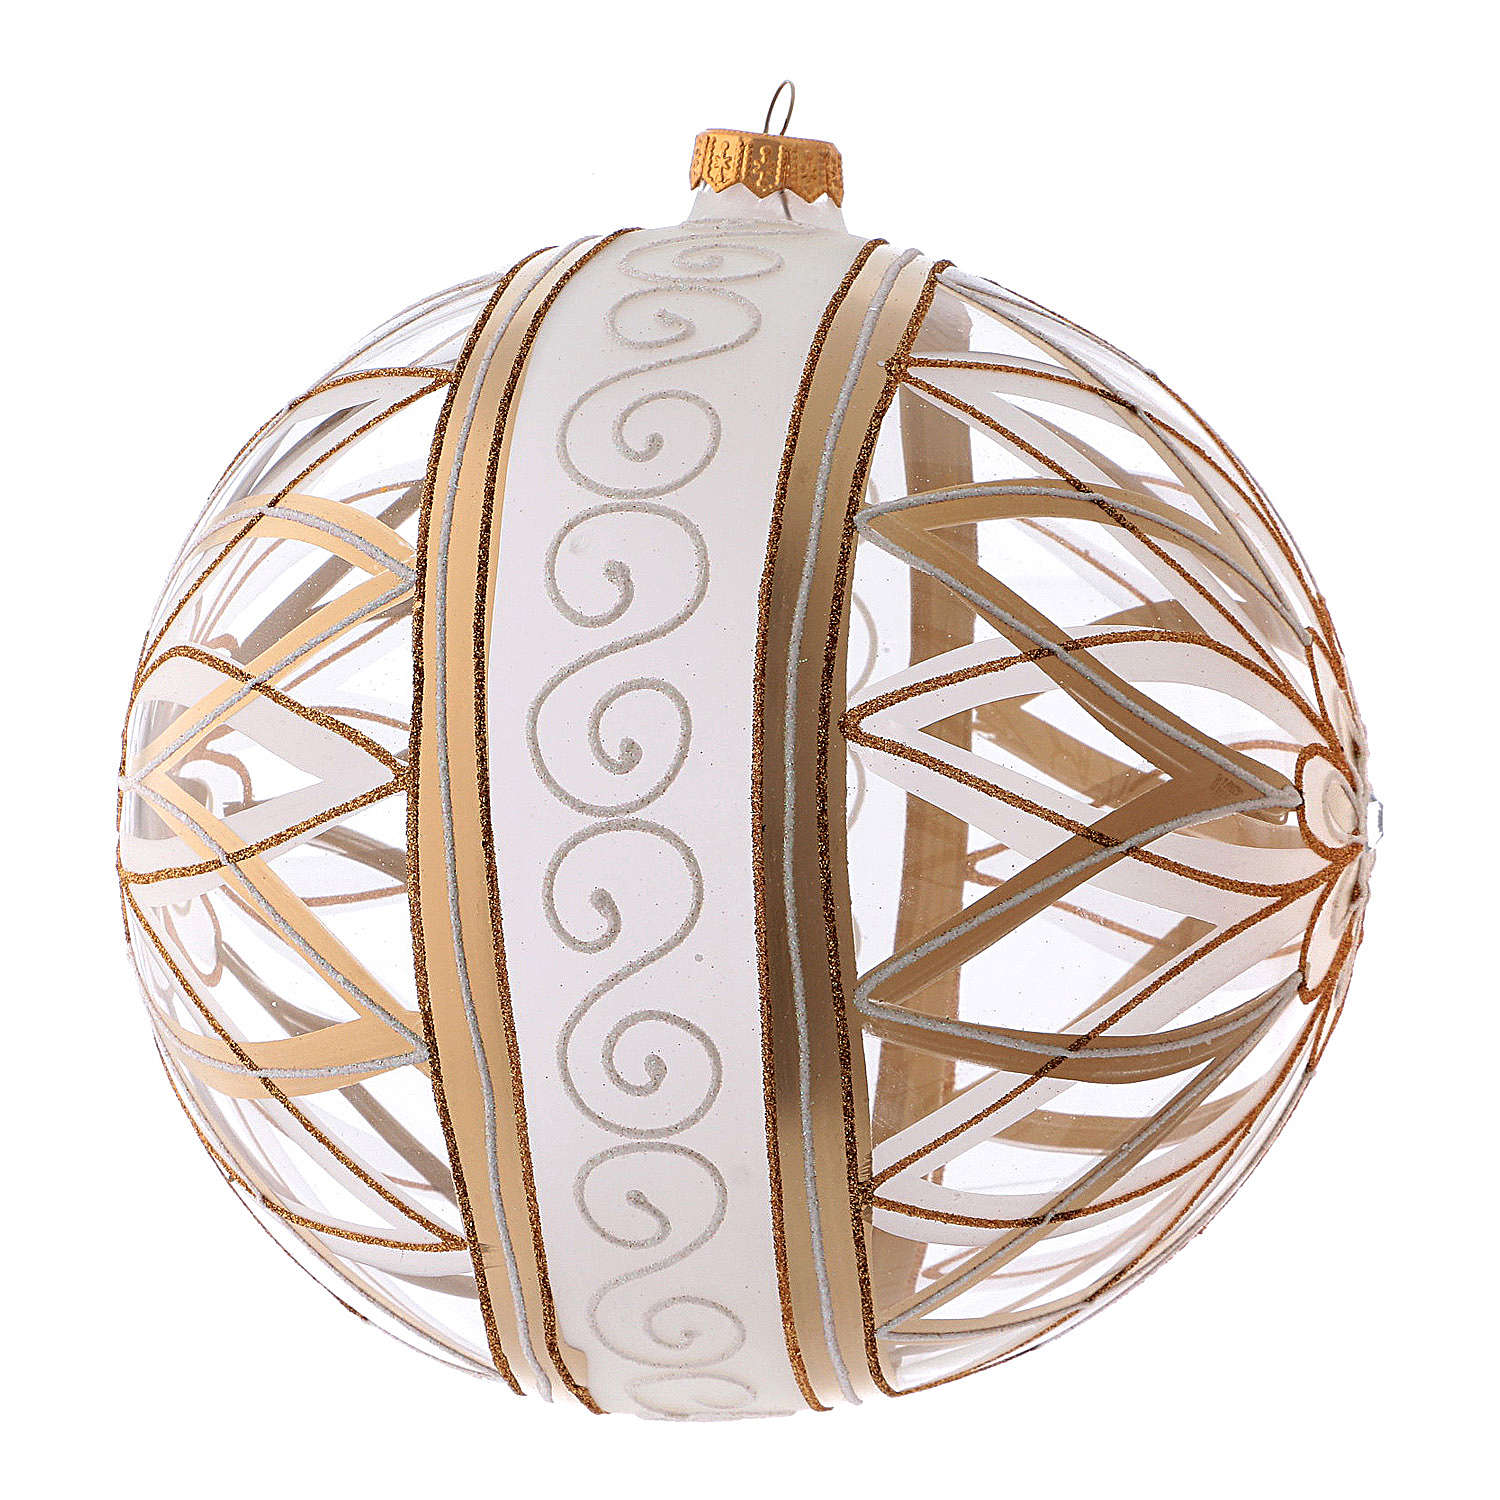 Transparent Christmas ball in blown glass with flower designs, 20 cm 4